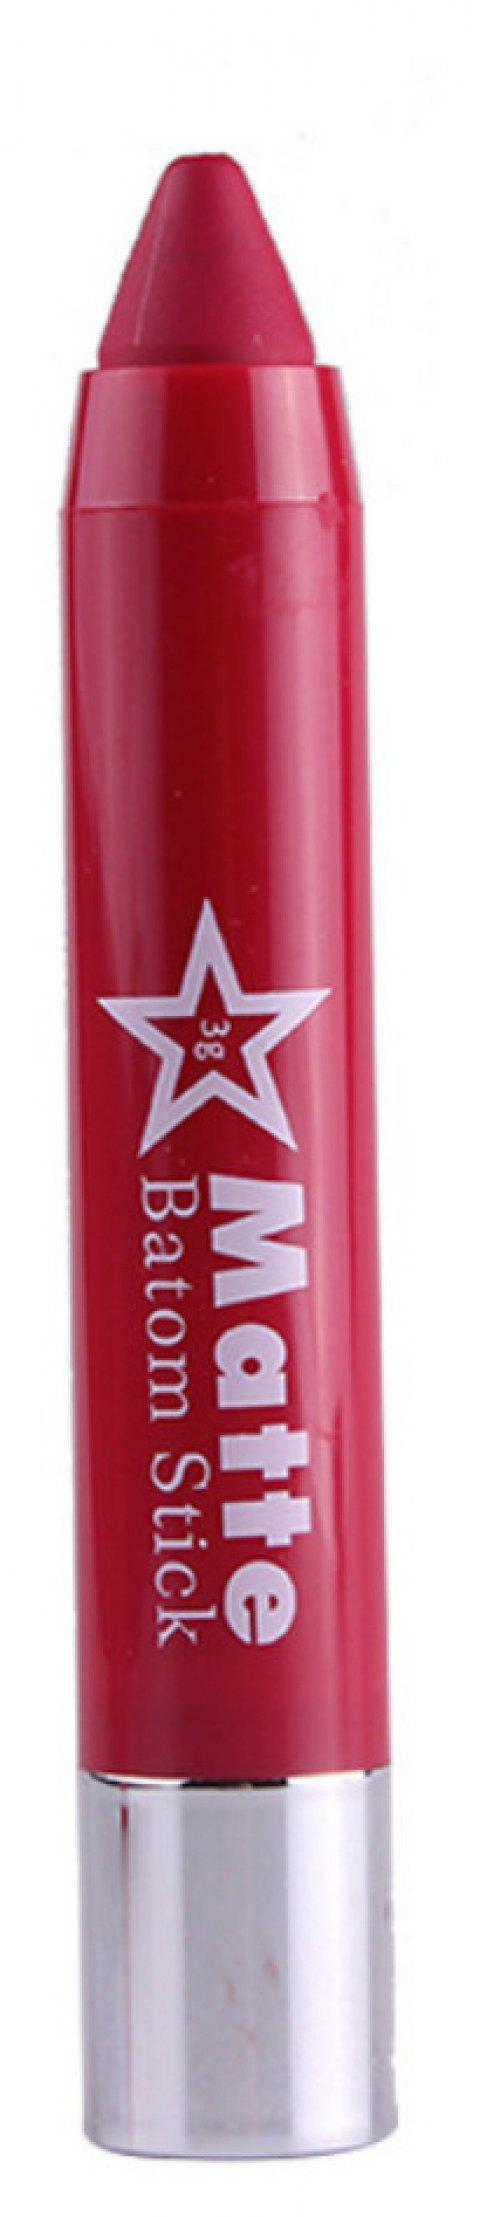 Lip Crayon Matte Stick Makeup Rotate Lipstick - 004